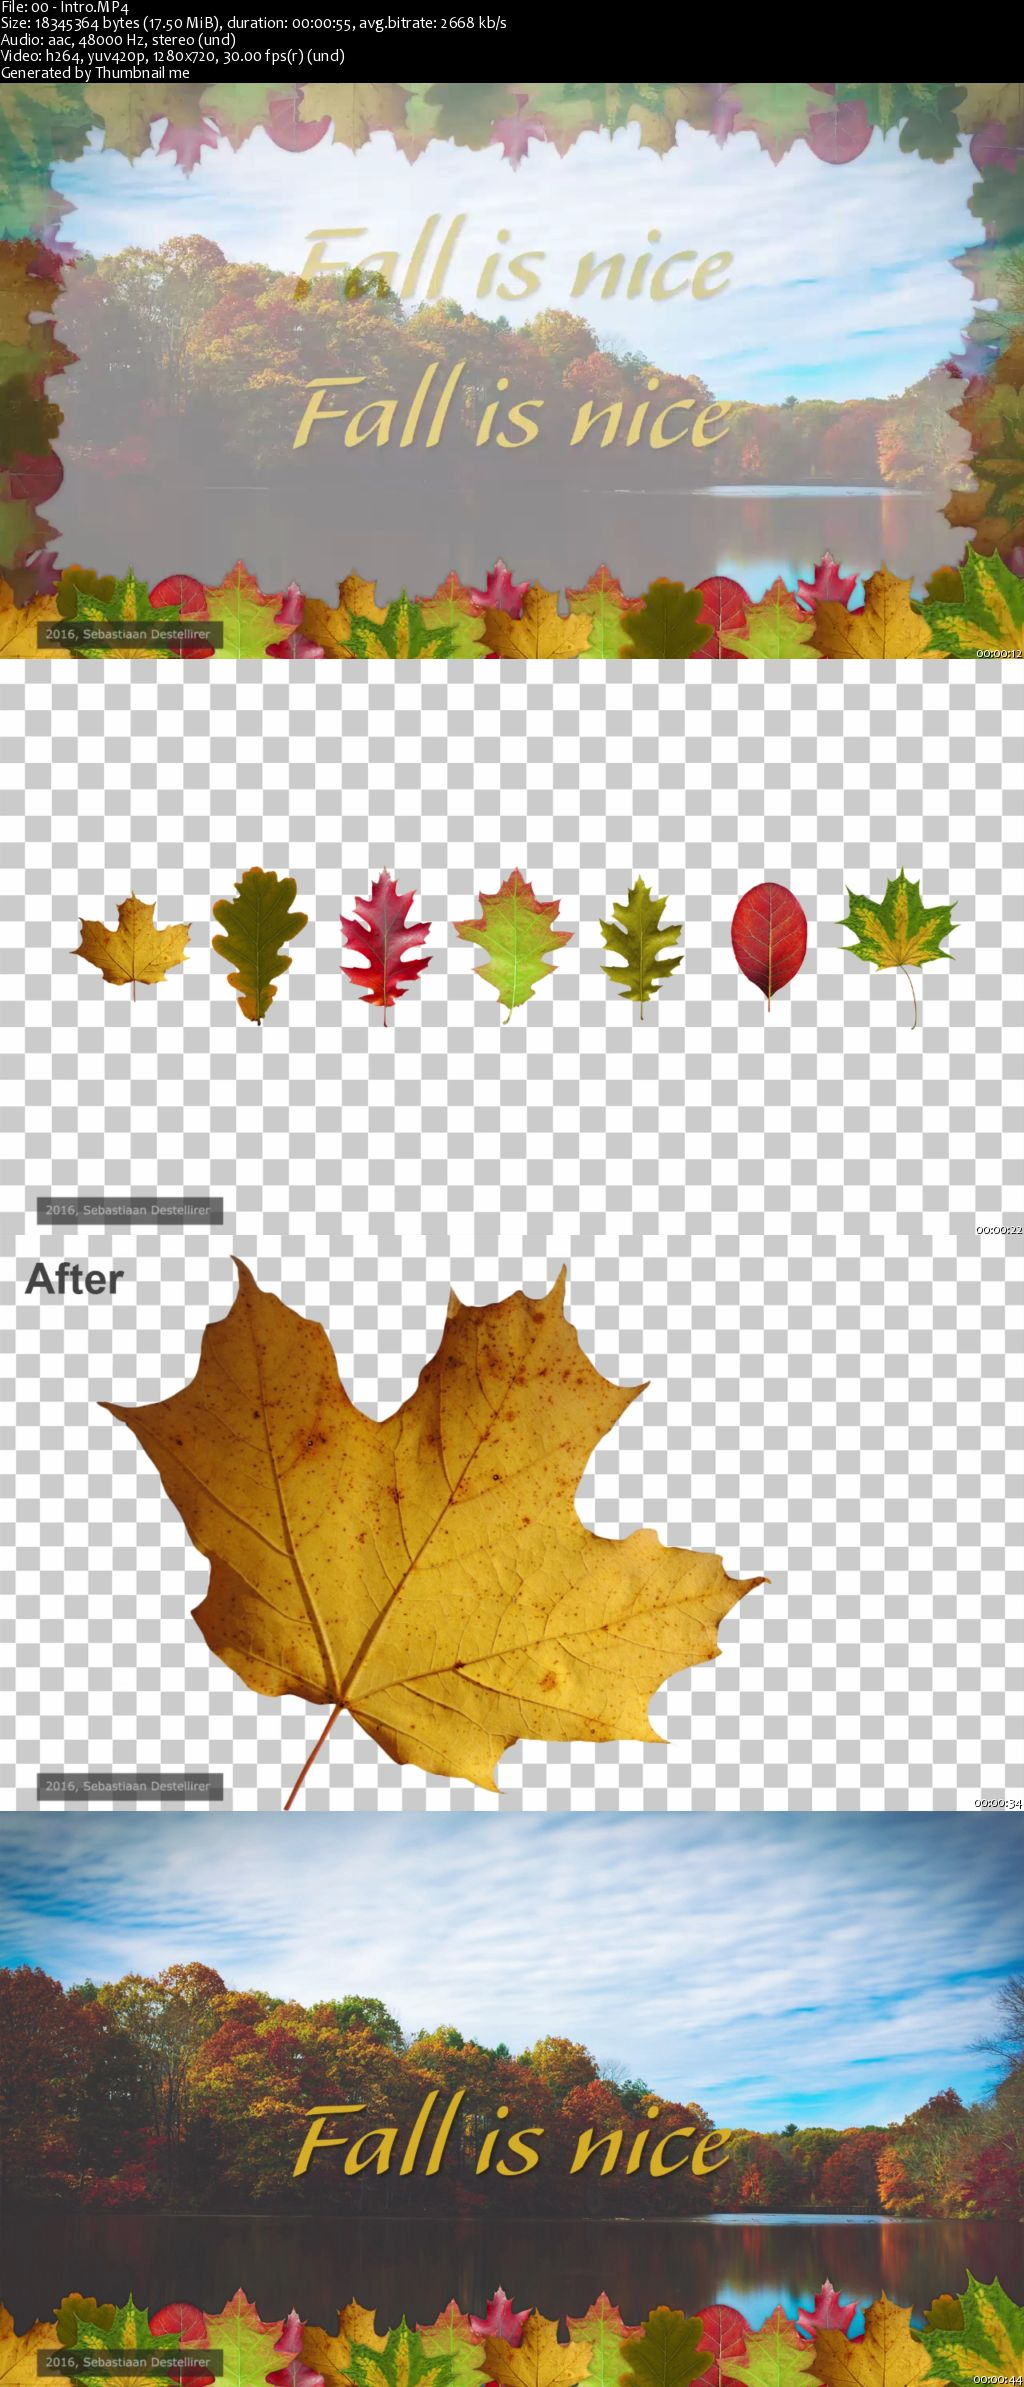 Capture the Fall - Create your own Fall Themed Picture borders in Adobe Photoshop